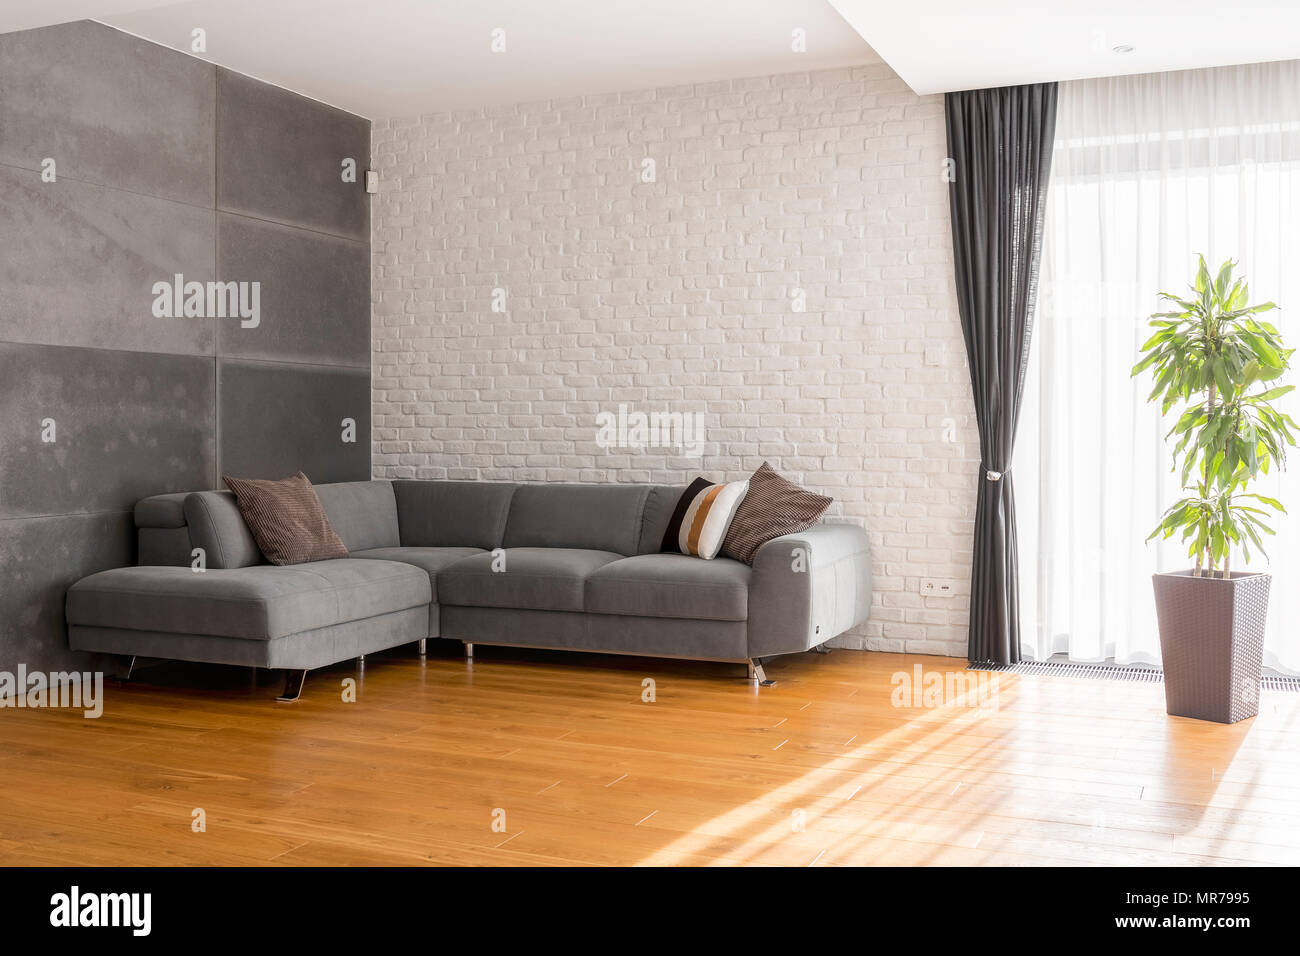 Sofa Holz Graues Wohnzimmer Holz